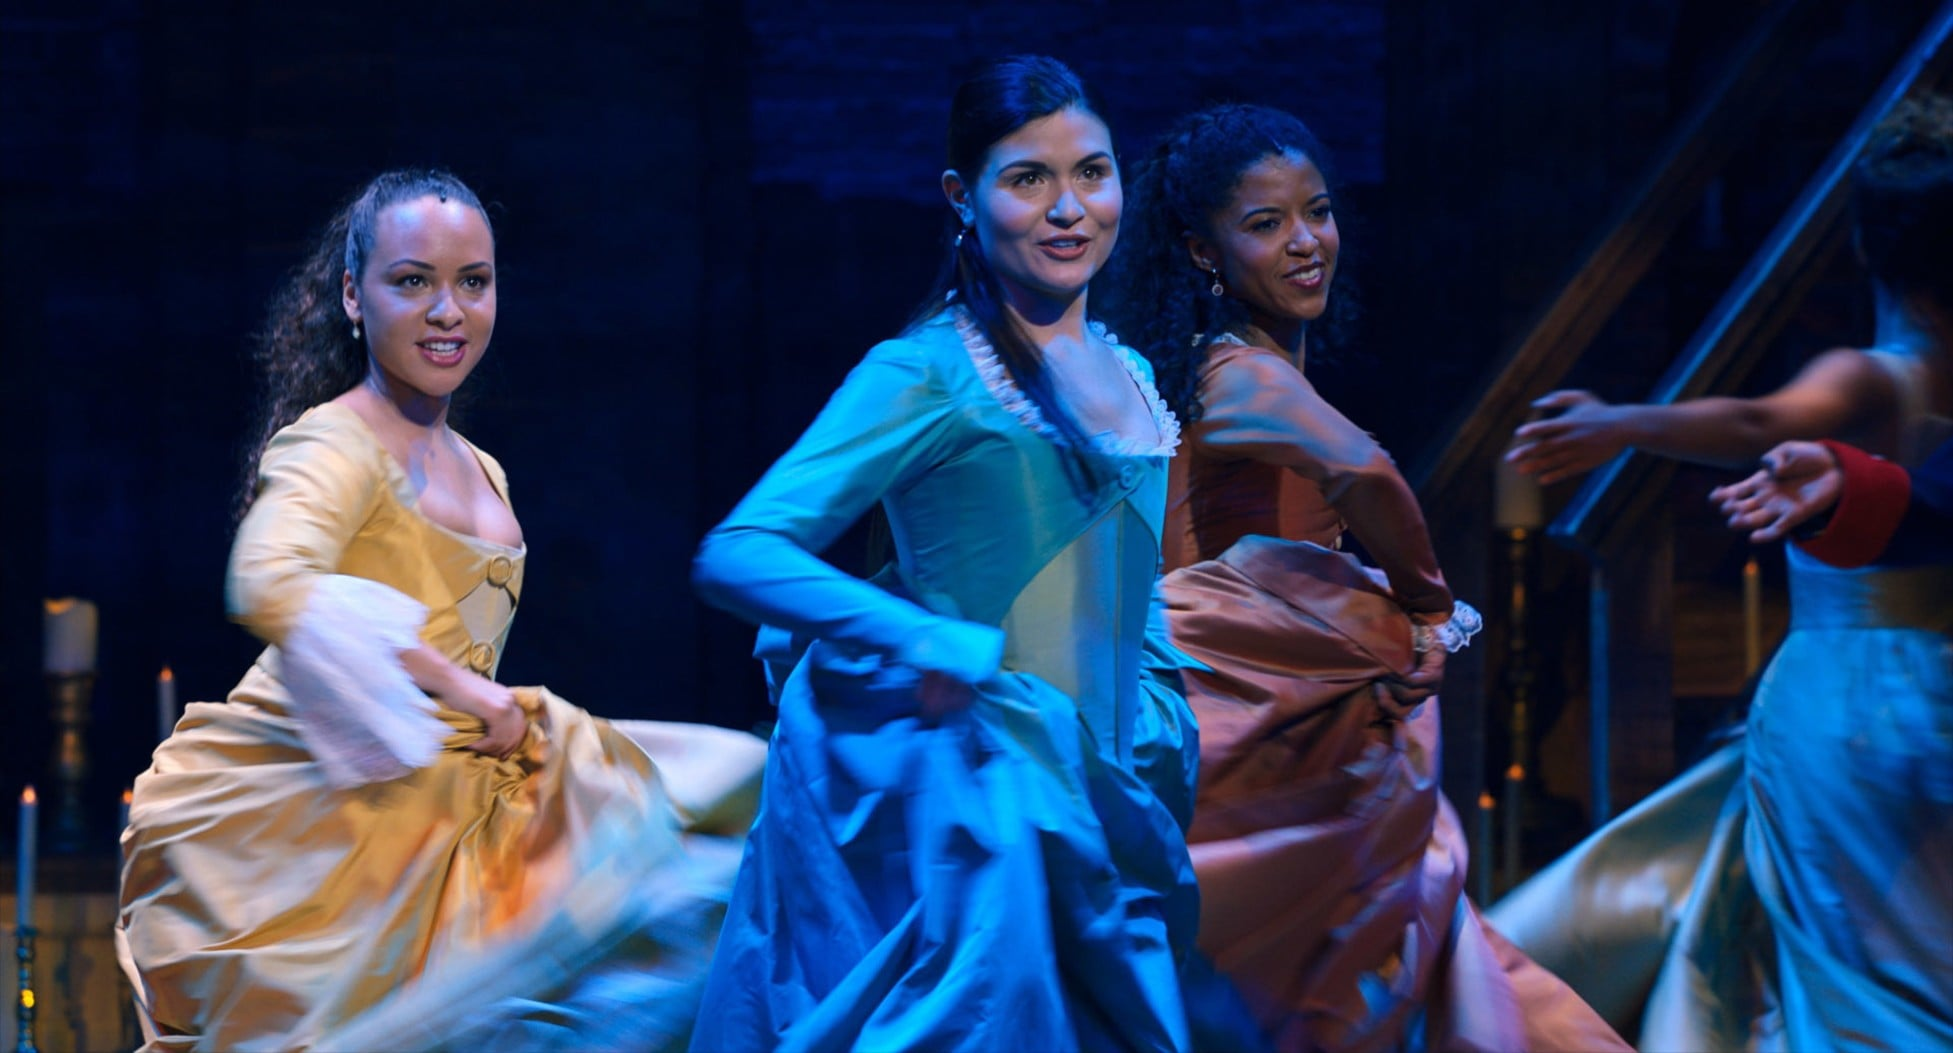 HAMILTON, from left: Jasmine Cephas Jones as Peggy Schuyler, Phillipa Soo as Eliza Hamilton, Renee Elise Goldsberry as Angelica Schuyler, 2020.  Disney+ / Courtesy Everett Collection